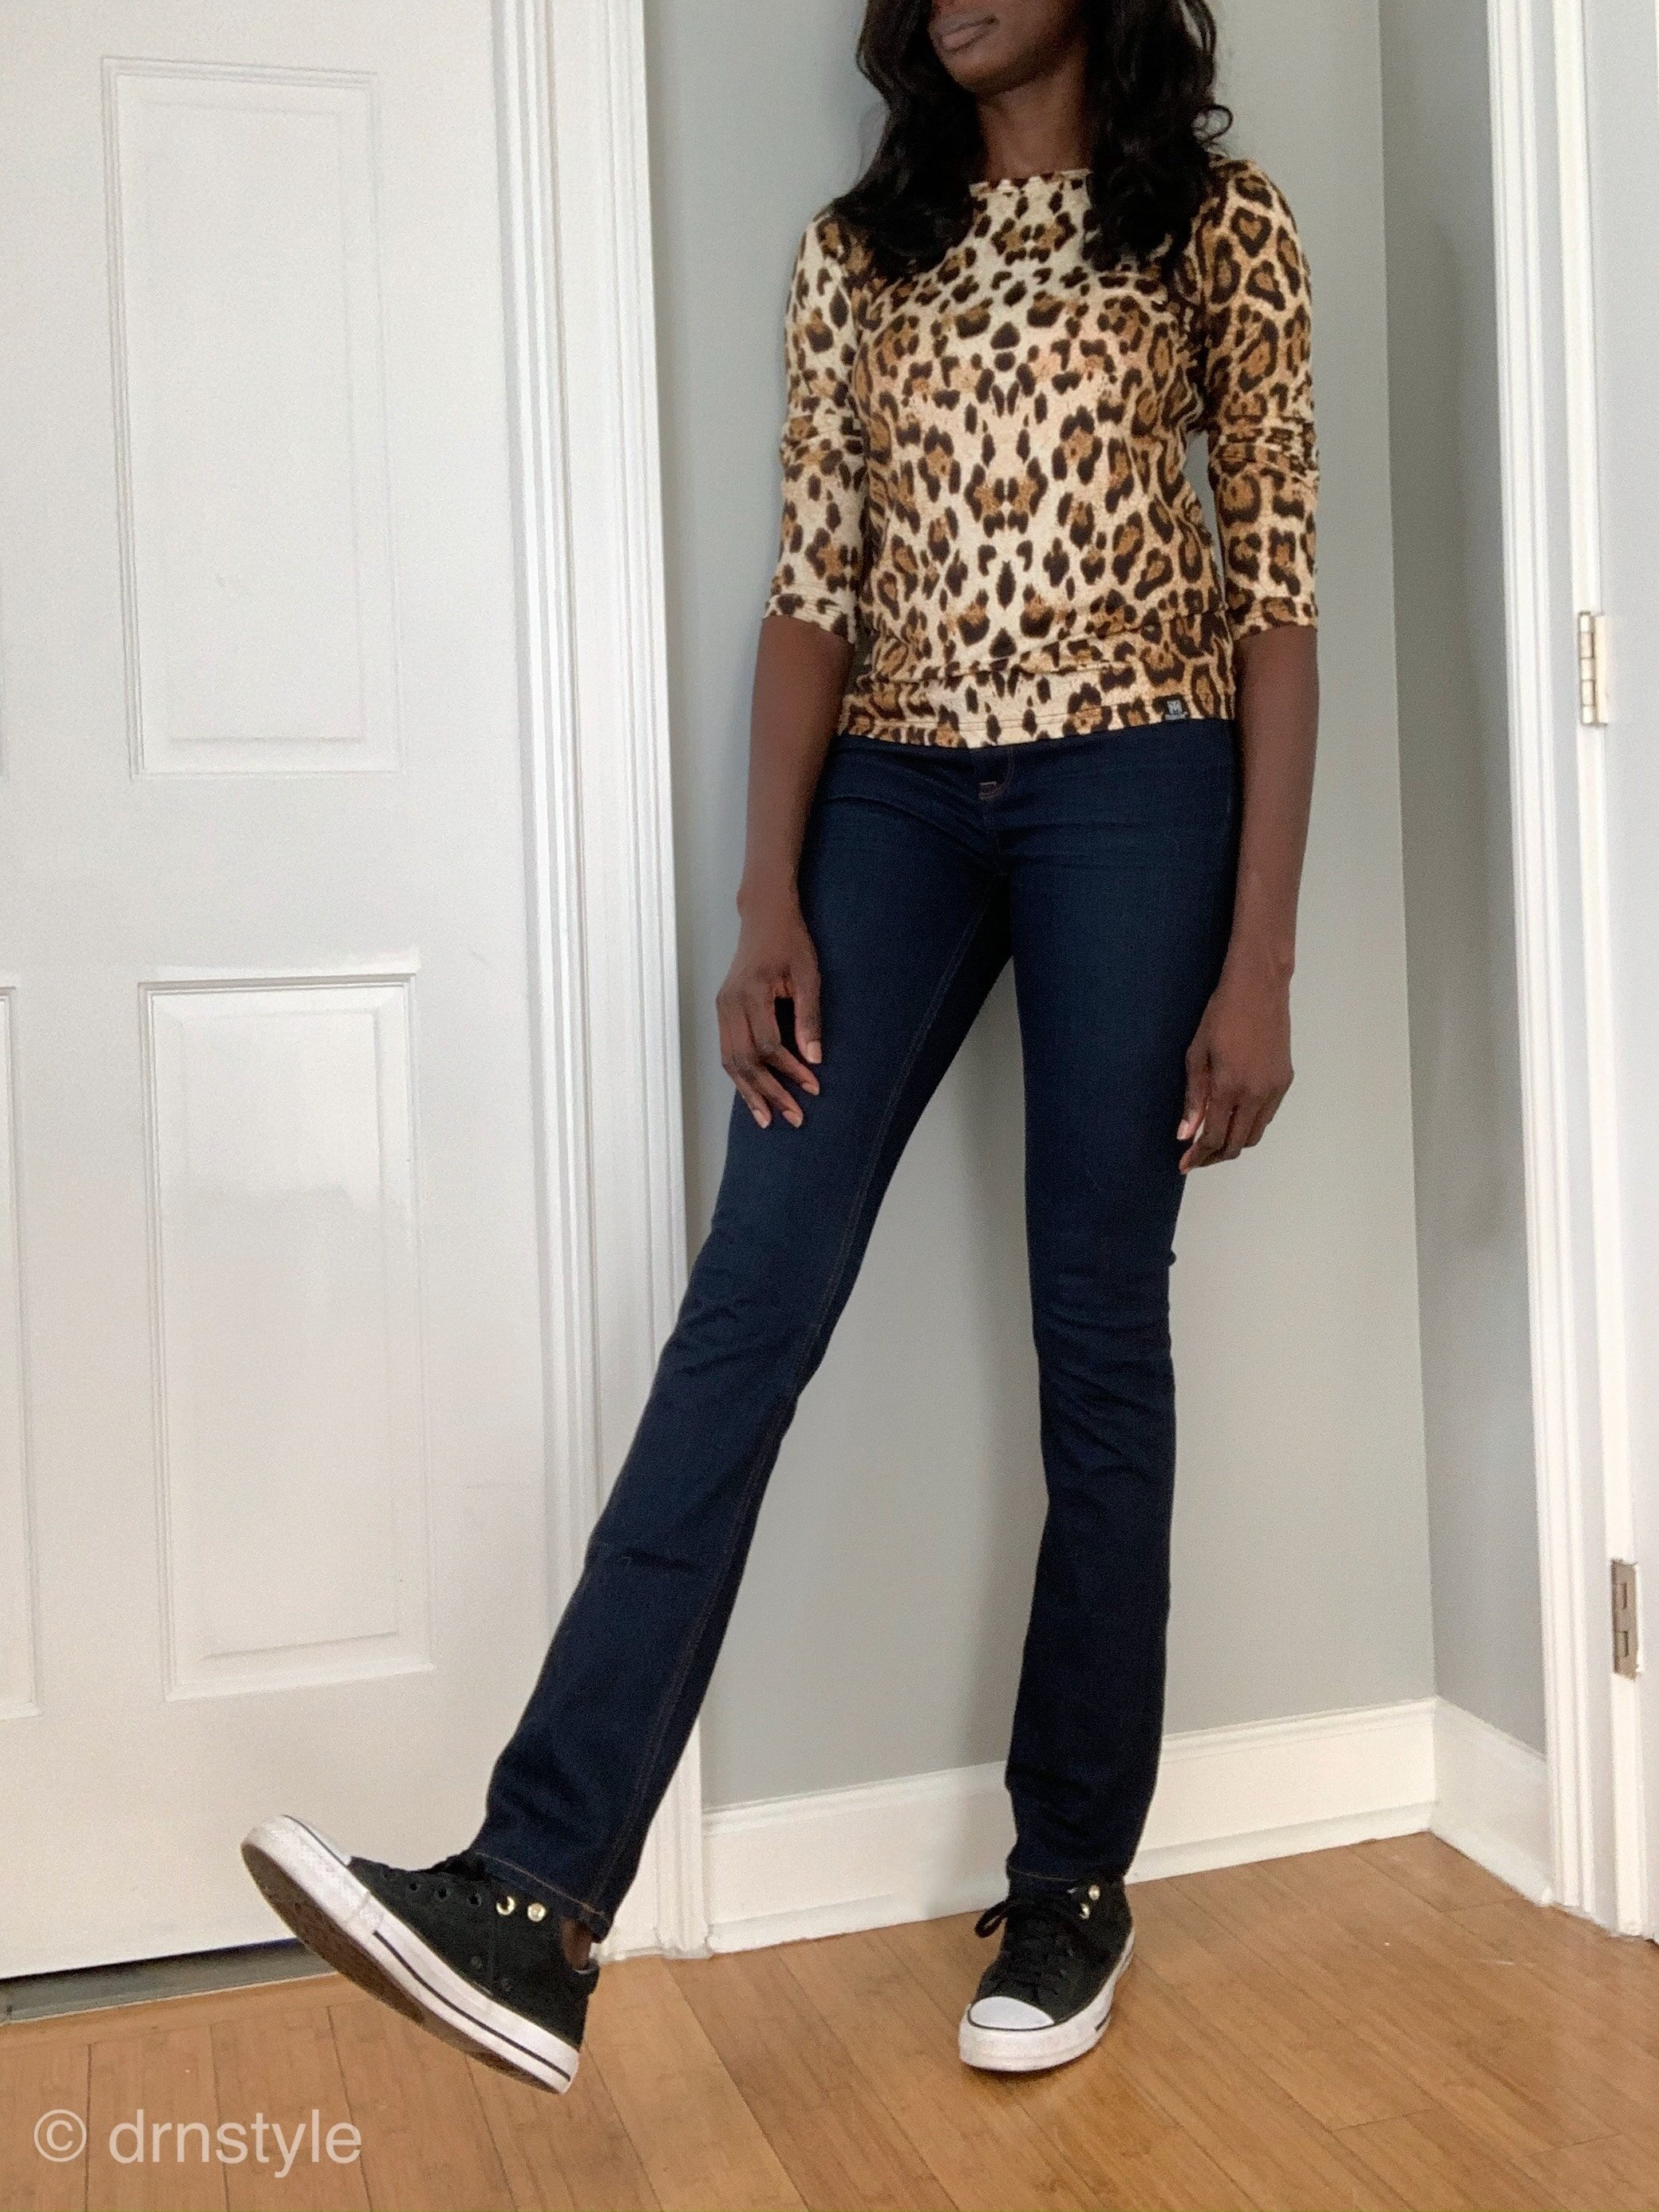 A leopard print top with dark washed jeans and Converse sneakers.